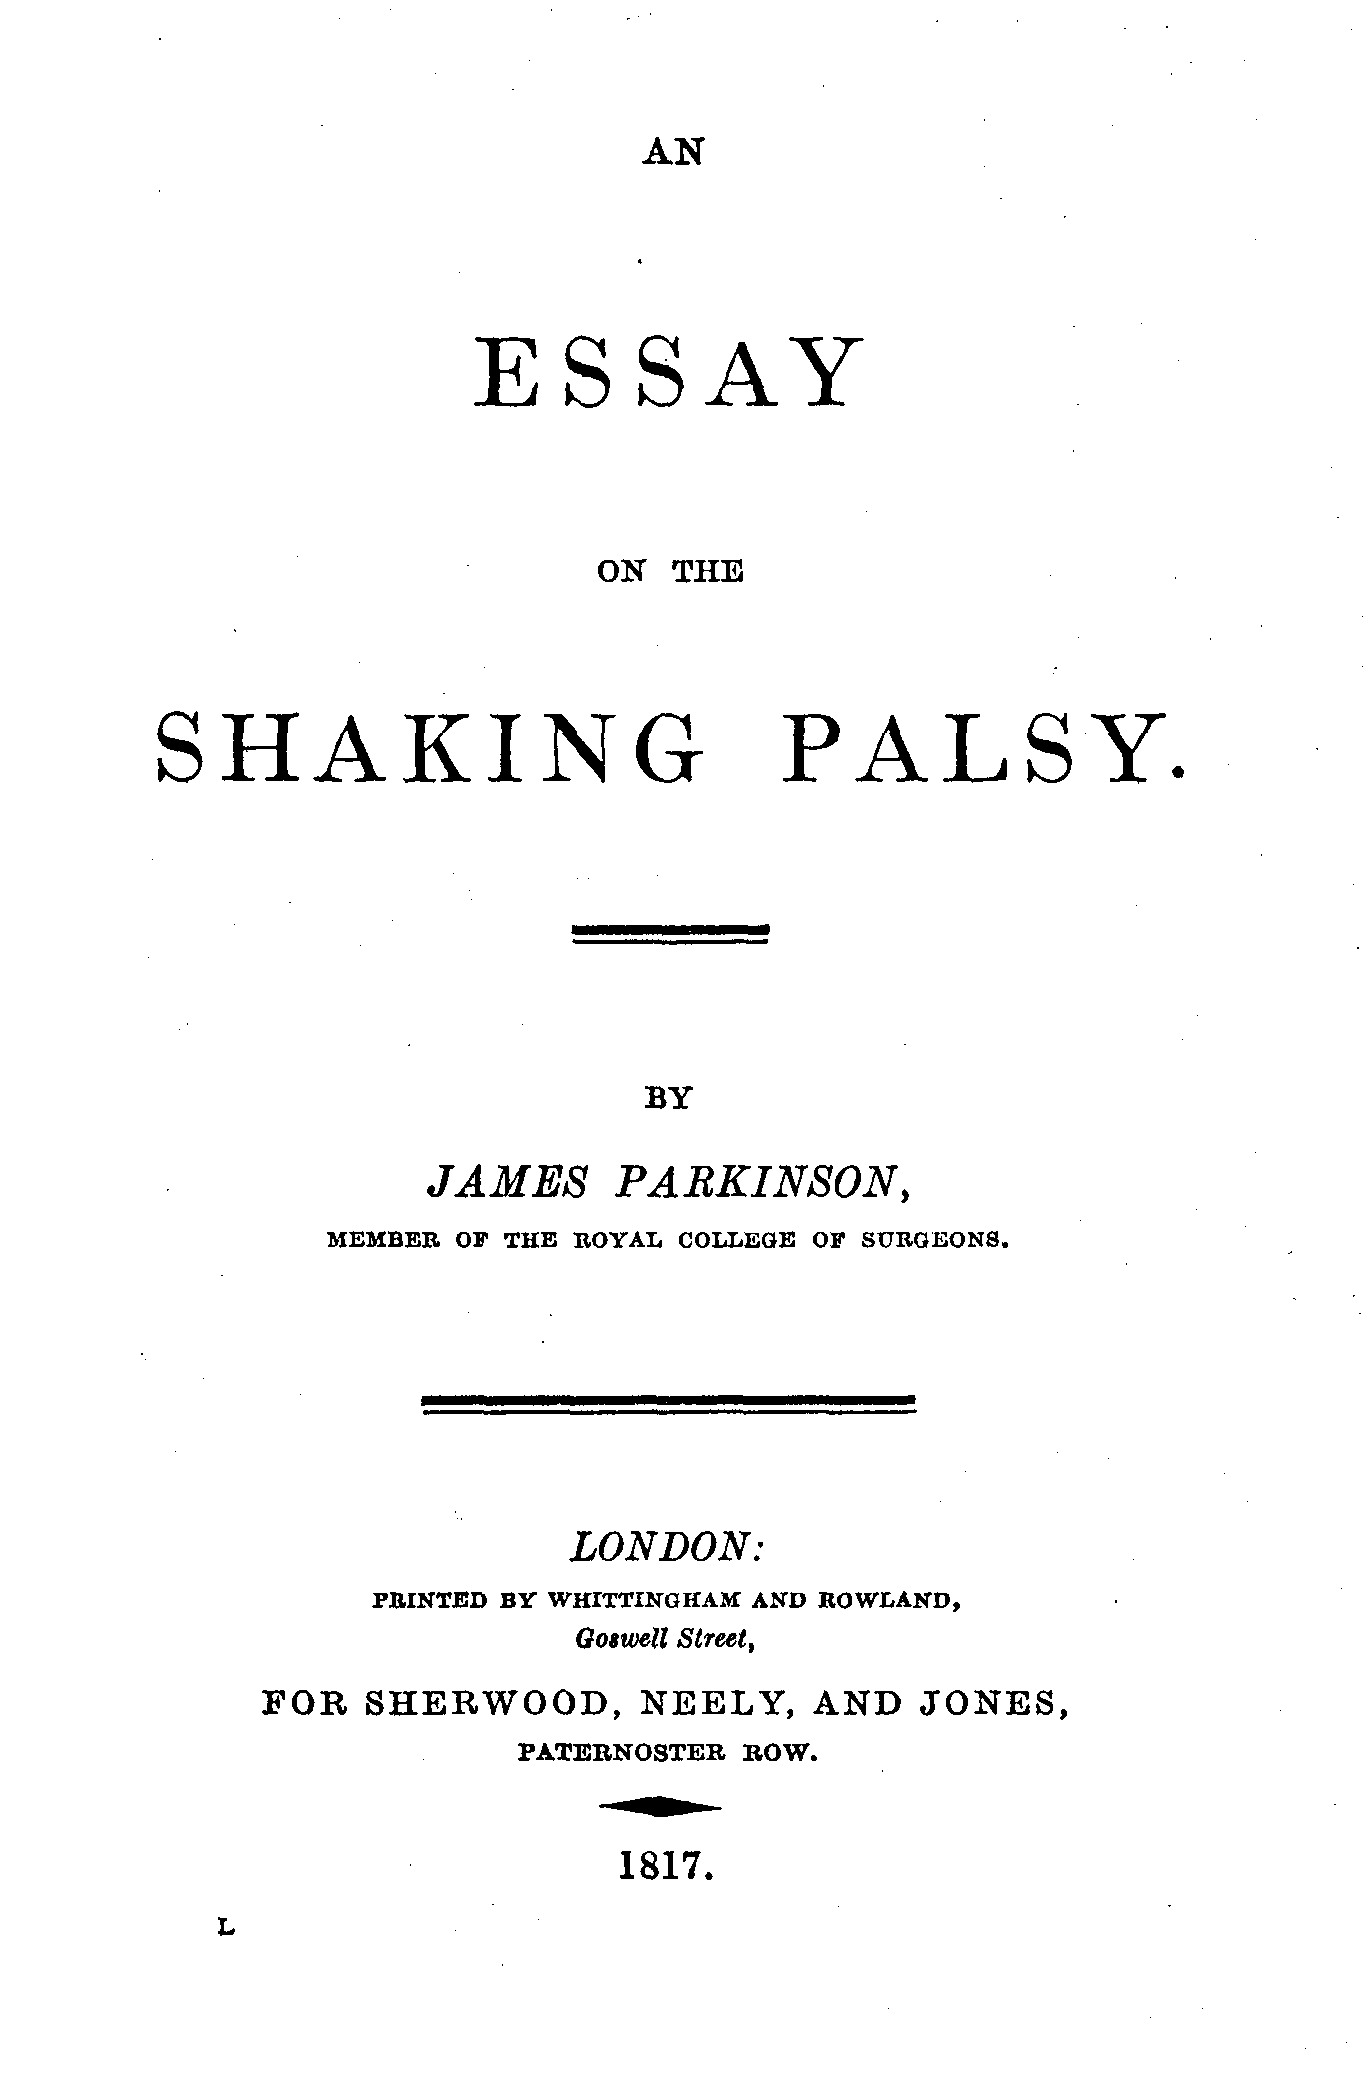 Essay Title Page Mla Parkinson An Essay On The Shaking Palsy (title Page) Essay Title Page Mla